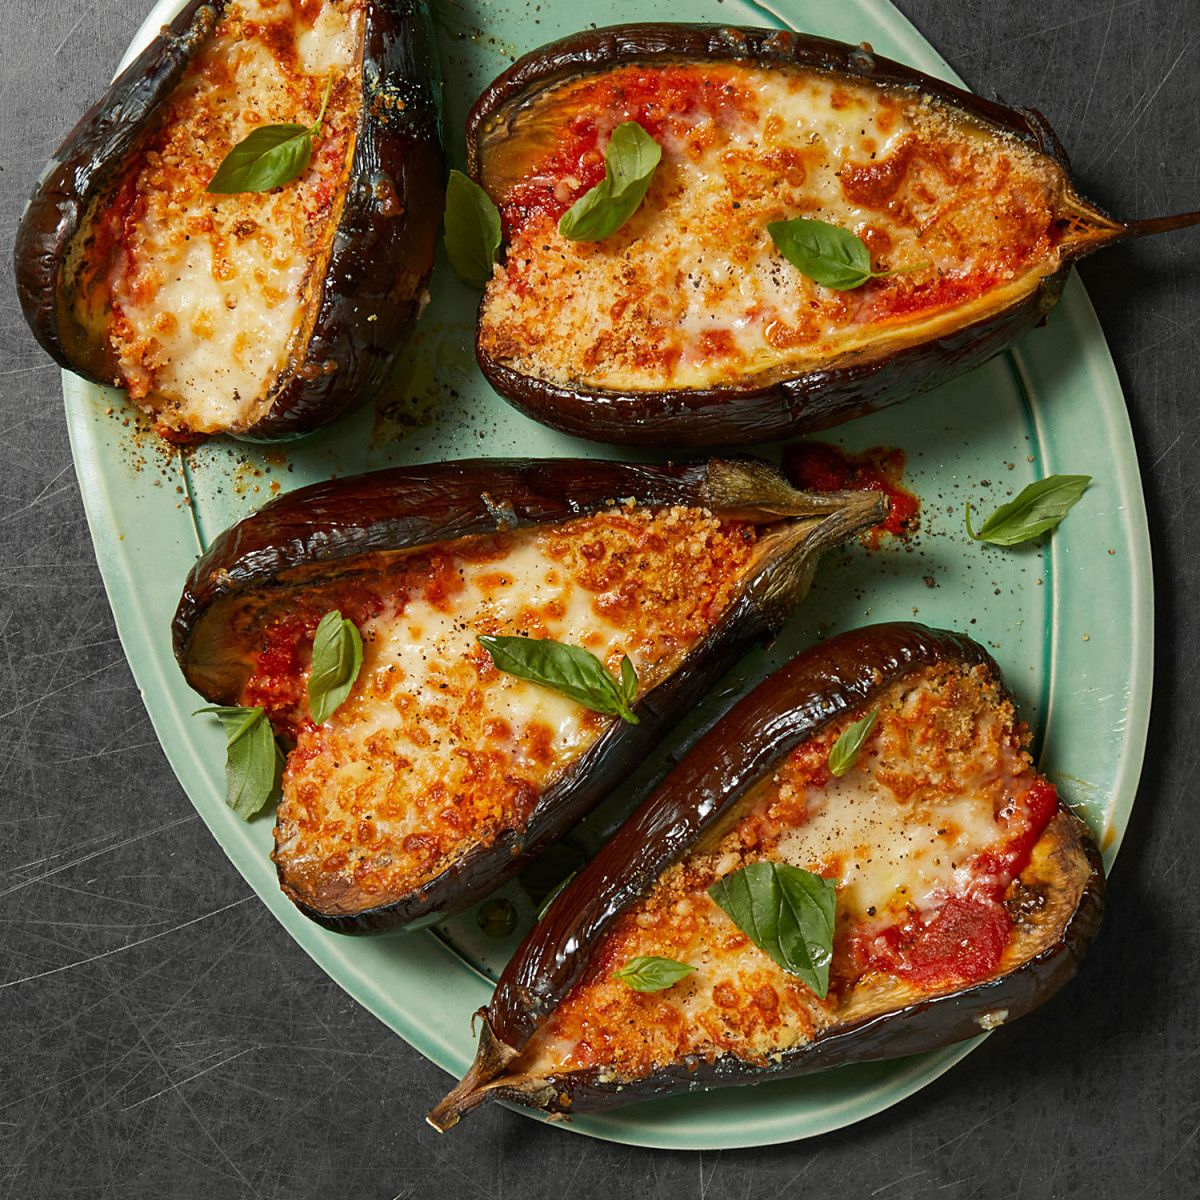 The Easiest Way To Make Eggplant Parm Recipe Ways To Cook Eggplant Eggplant Parmesan Eggplant Parm,Purple Cleome Flower